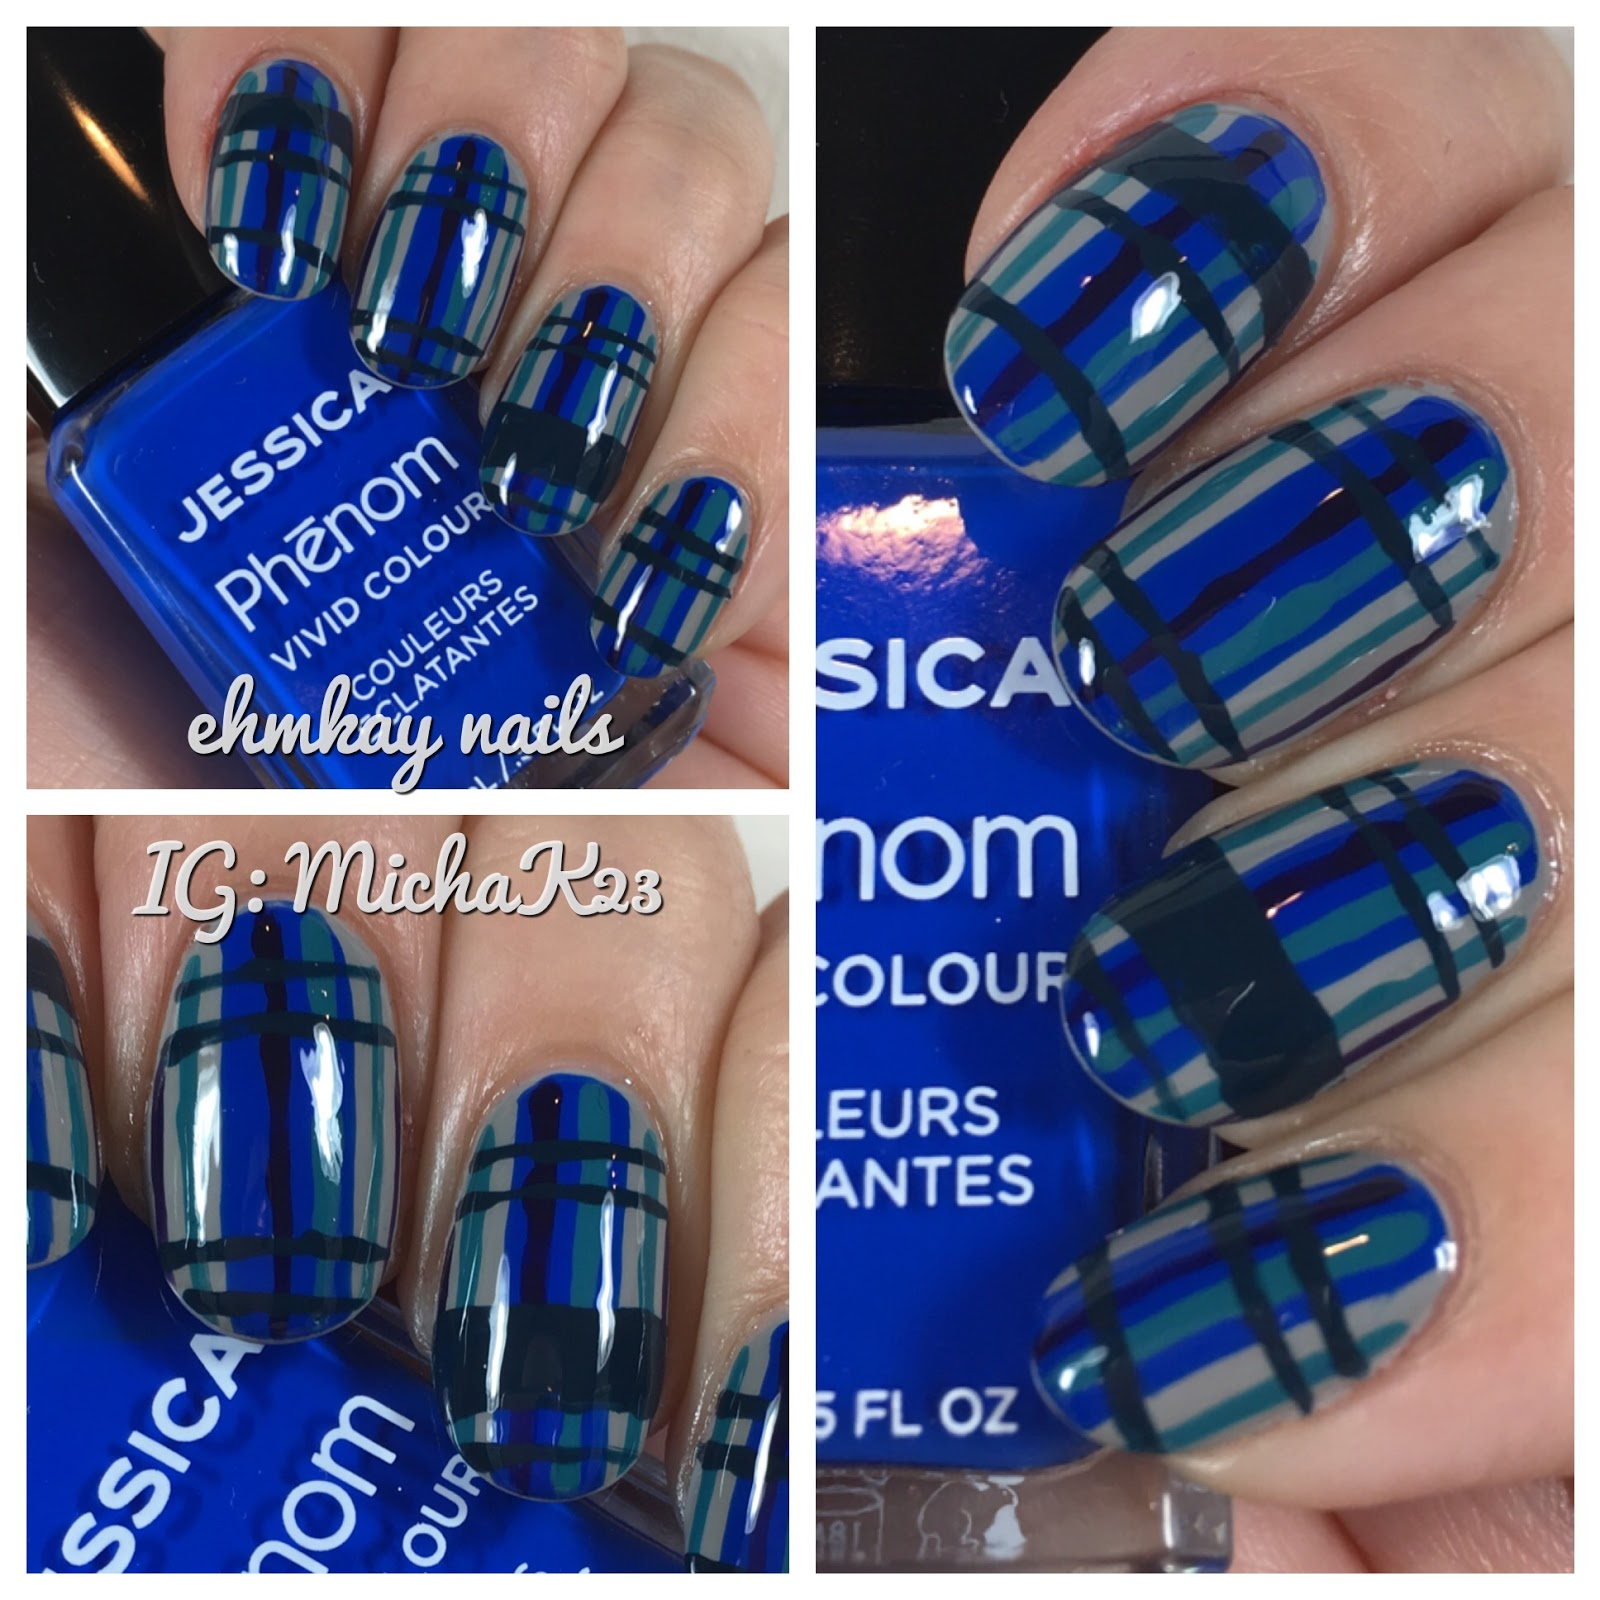 Then I Used Jessica Decadent And Placed A Stripe Down The Middle Of My Nails Cosmetics Faux Fur Blue